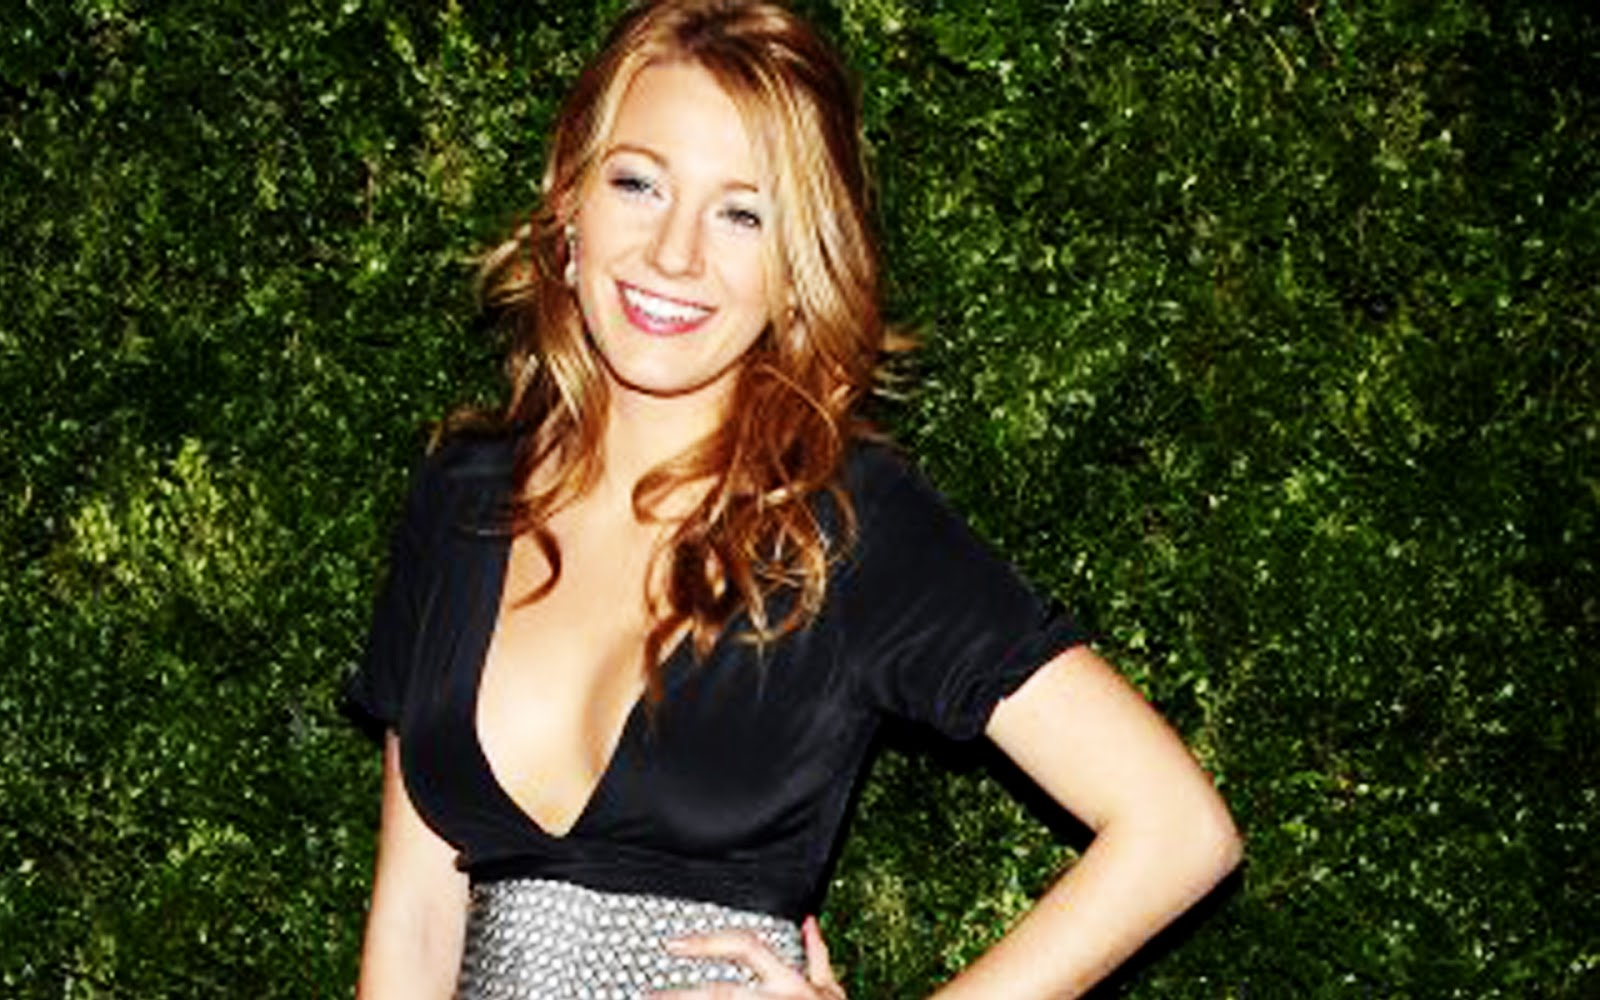 Blake Lively Hot Wallpapers | Blake Lively Wallpapers